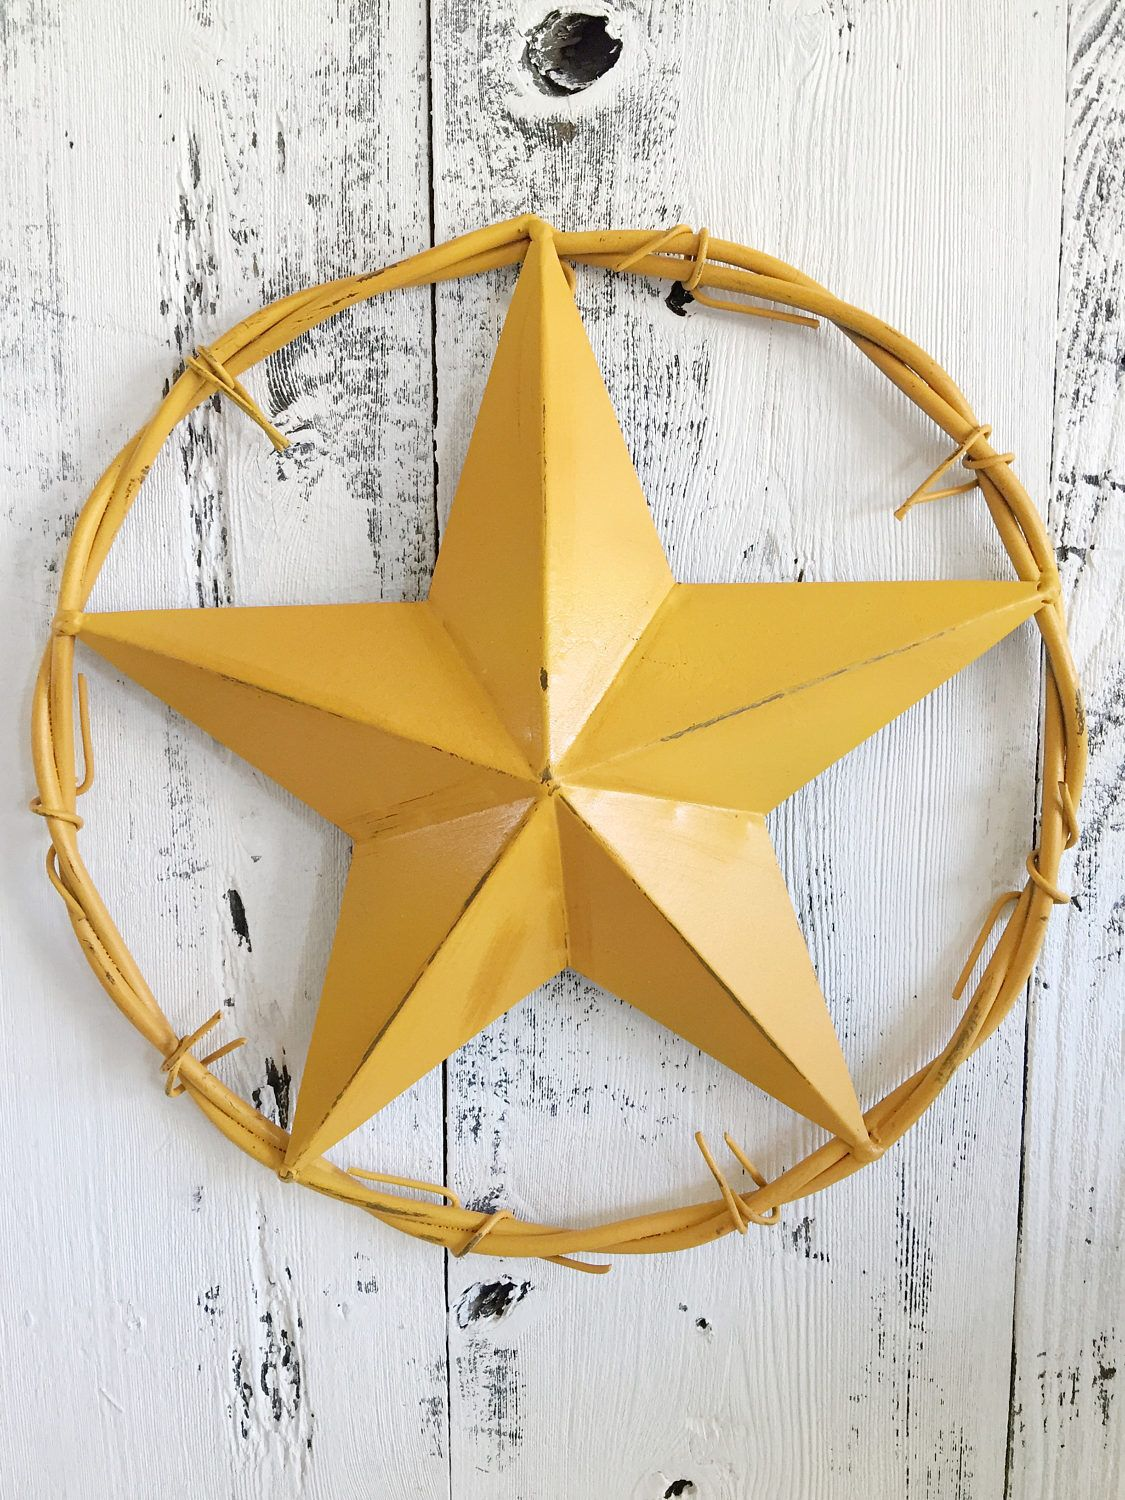 Unique Large Texas Star Wall Decor Photos - Wall Art Collections ...